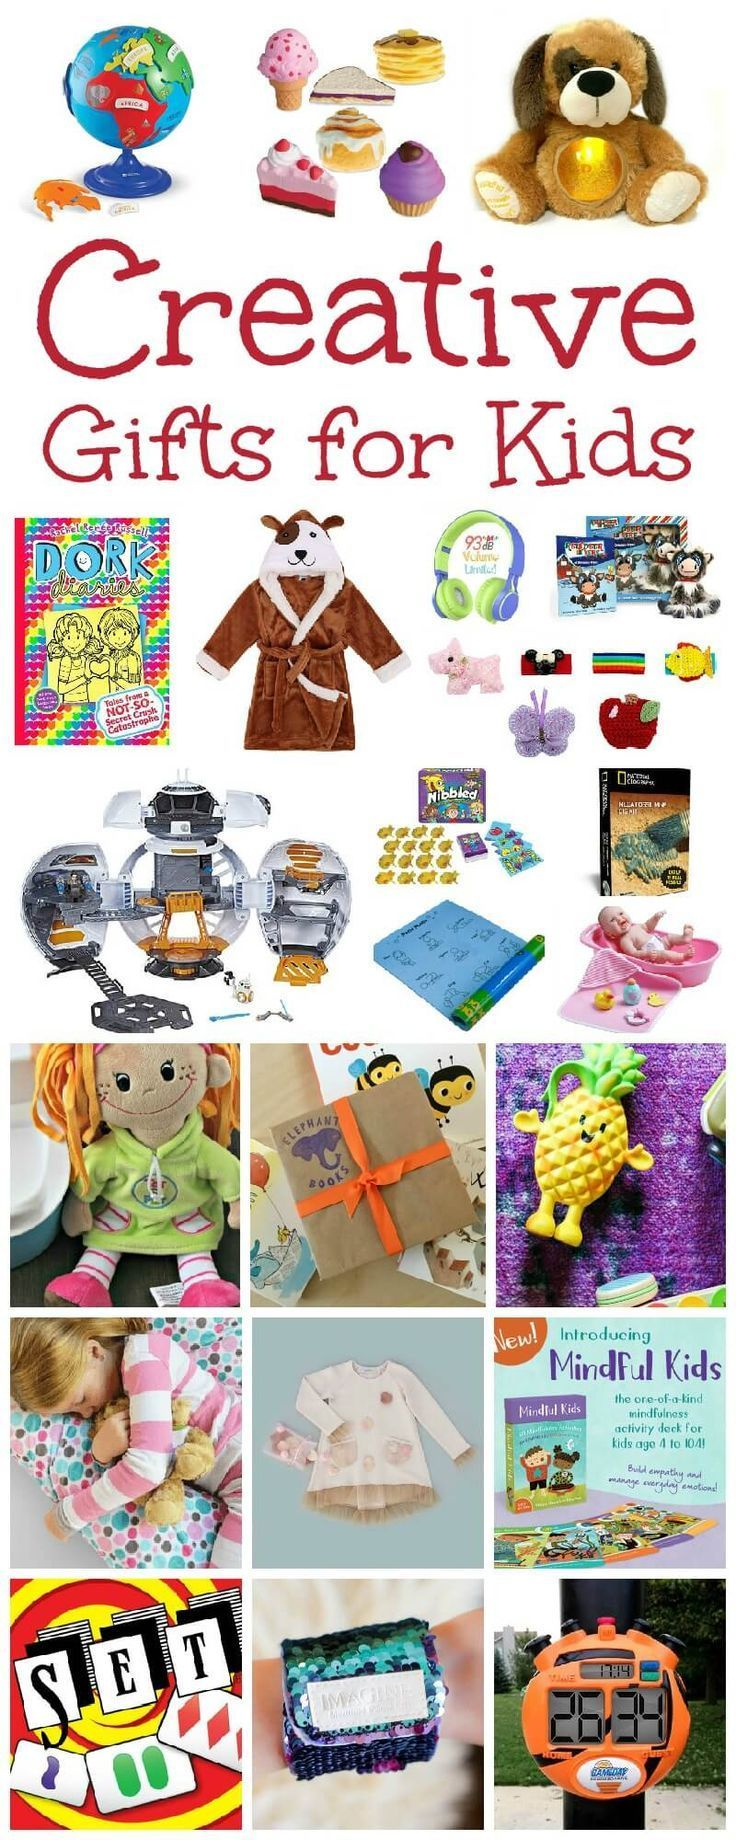 The 25 best one year old christmas gifts ideas on pinterest diy 27 corporate gift ideas cute and easy diy gifts and client gifts negle Images